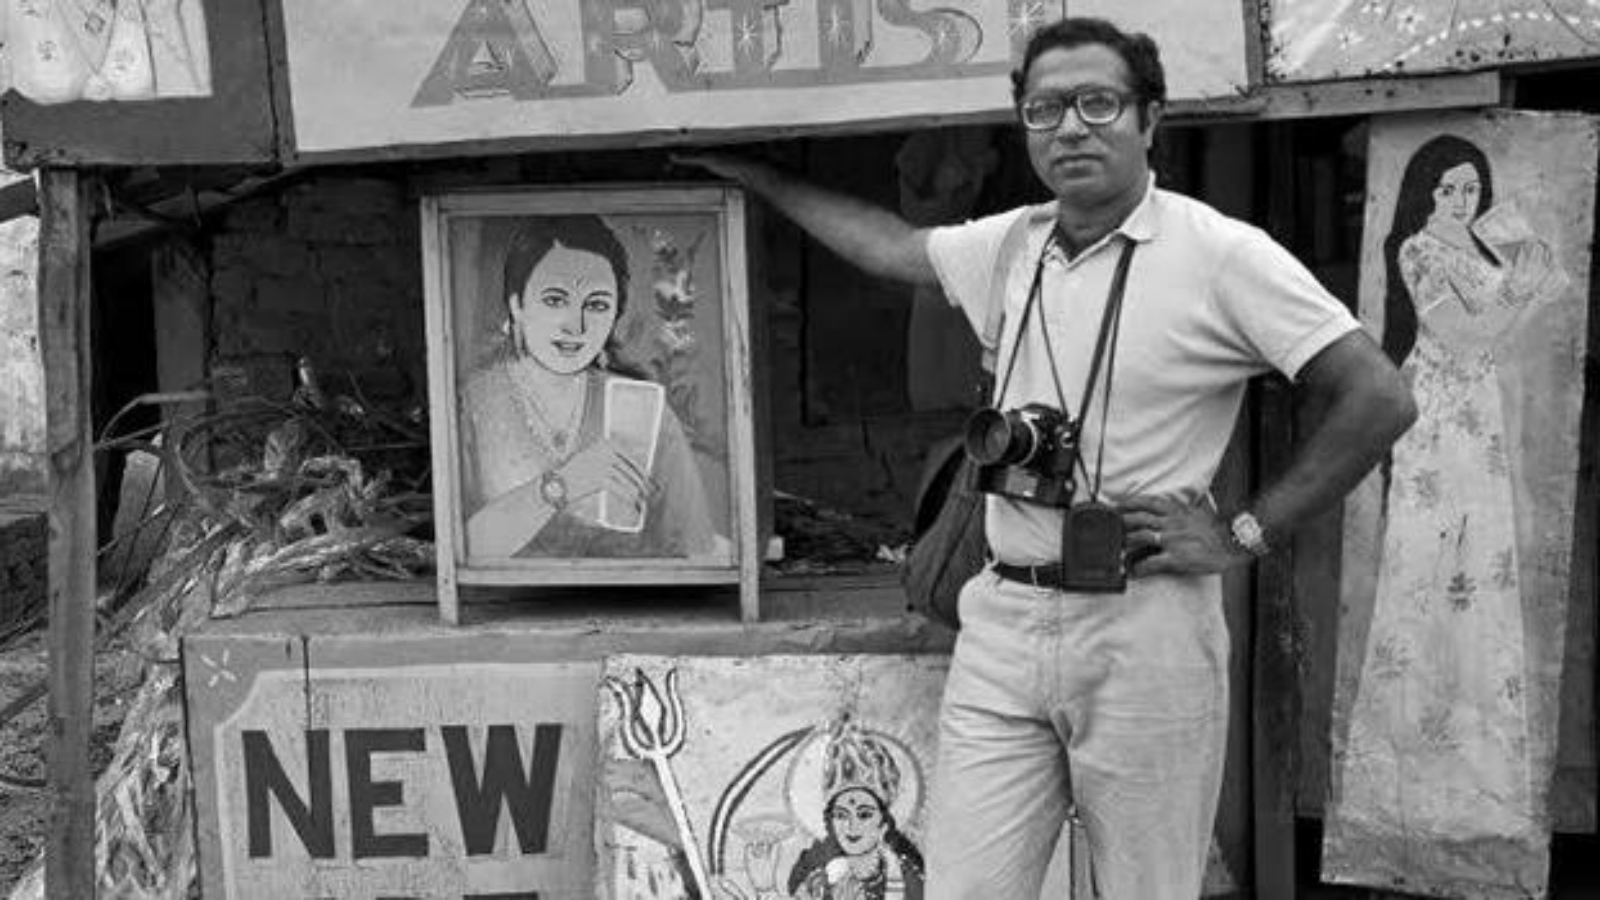 Pioneering Photojournalist Who Today Is >> The Pioneering Photographer Who Influences Almost Every Indian